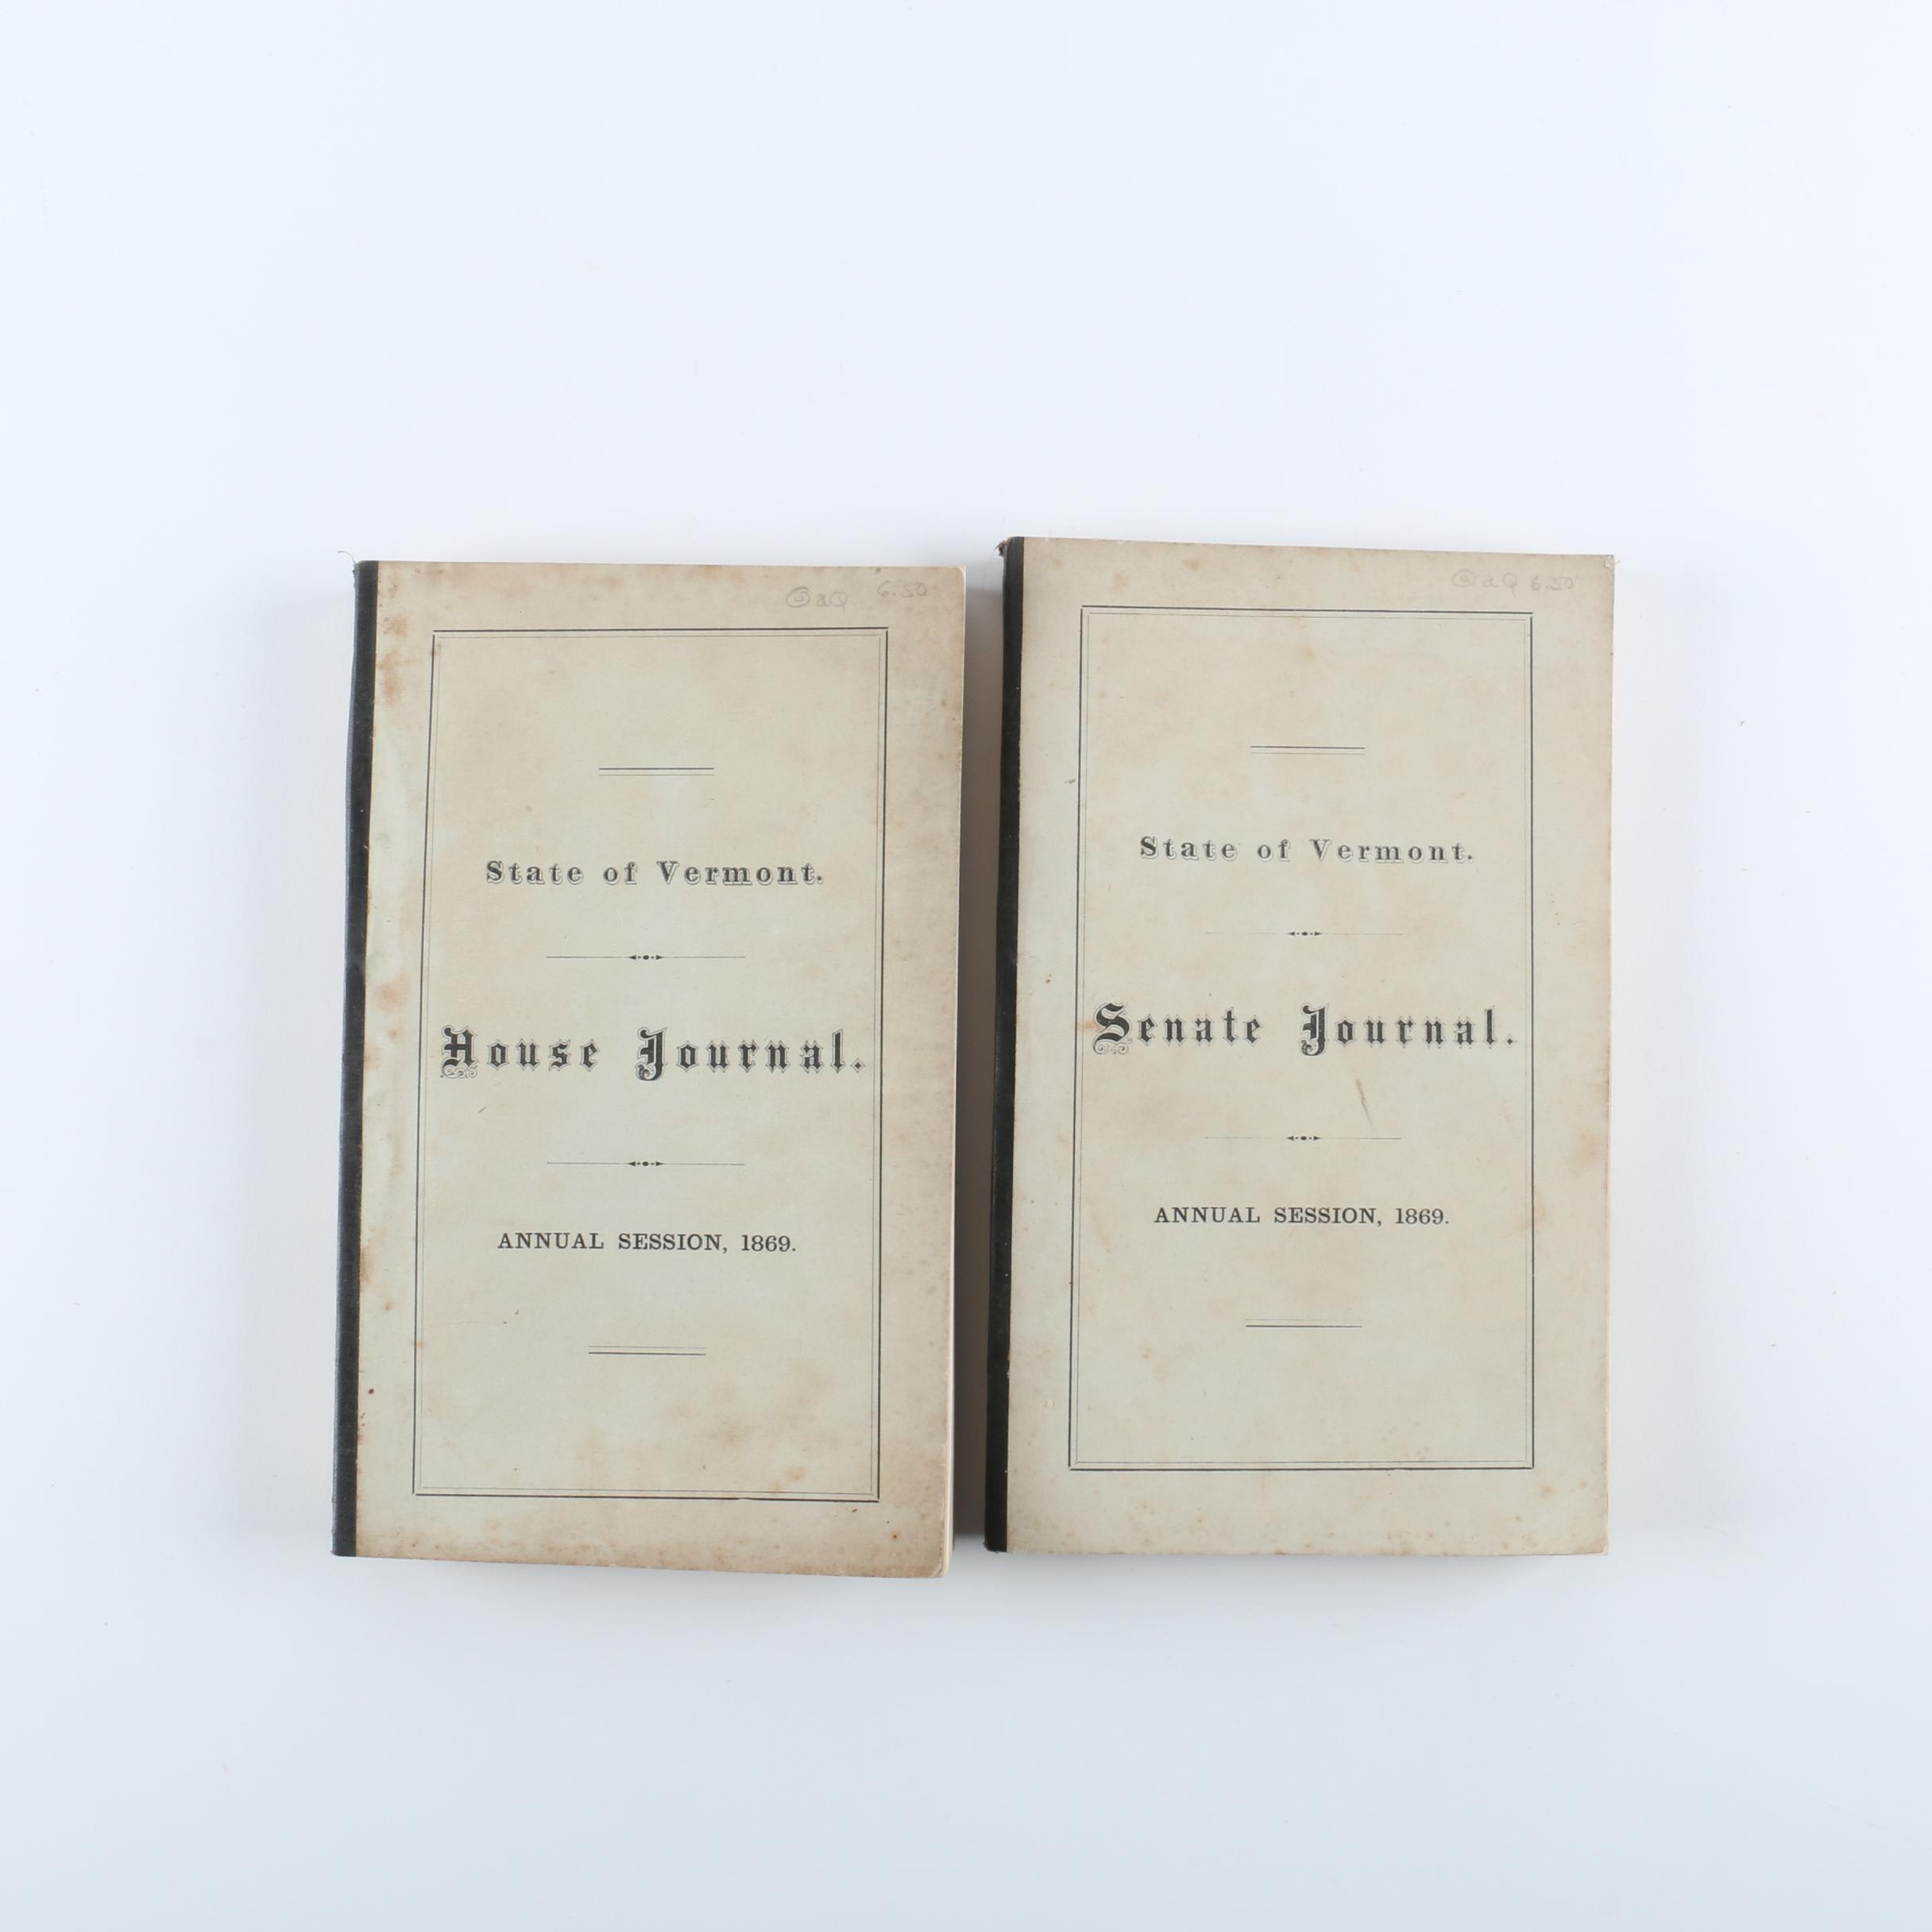 1869 Vermont House Journal and Senate Journal